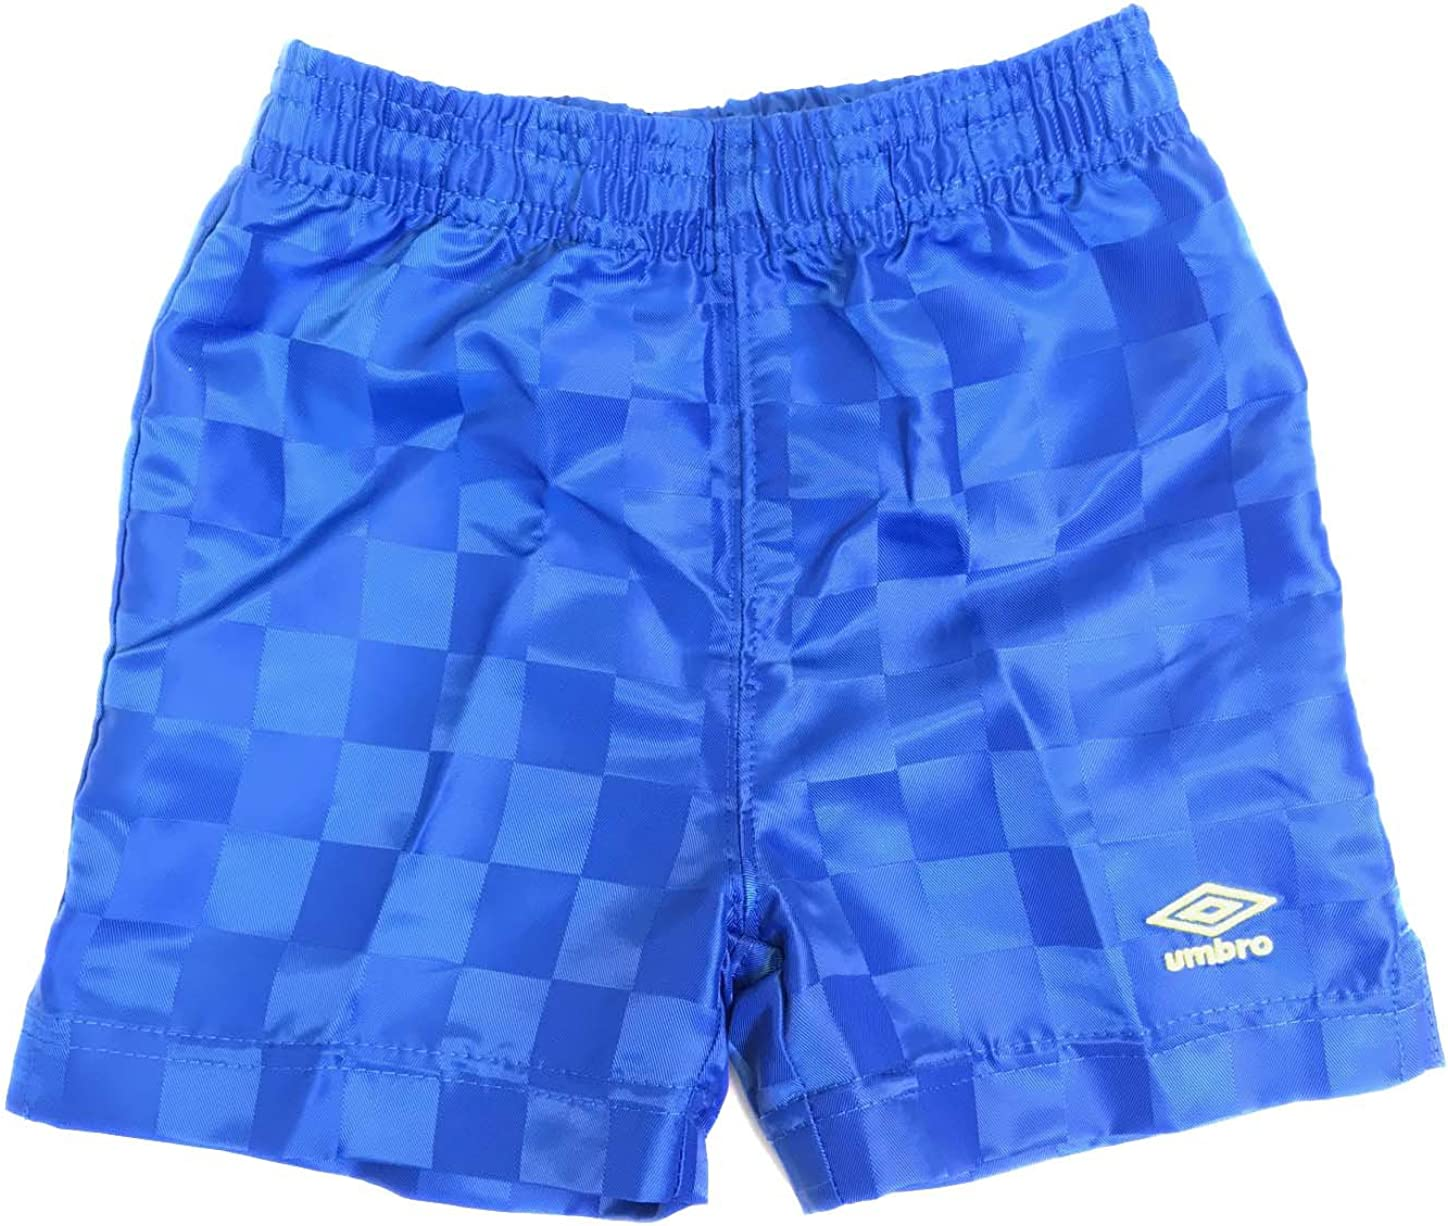 Authentic Umbro Derby County 2017-18 Junior Home Shorts Small Boys 7-8 yrs